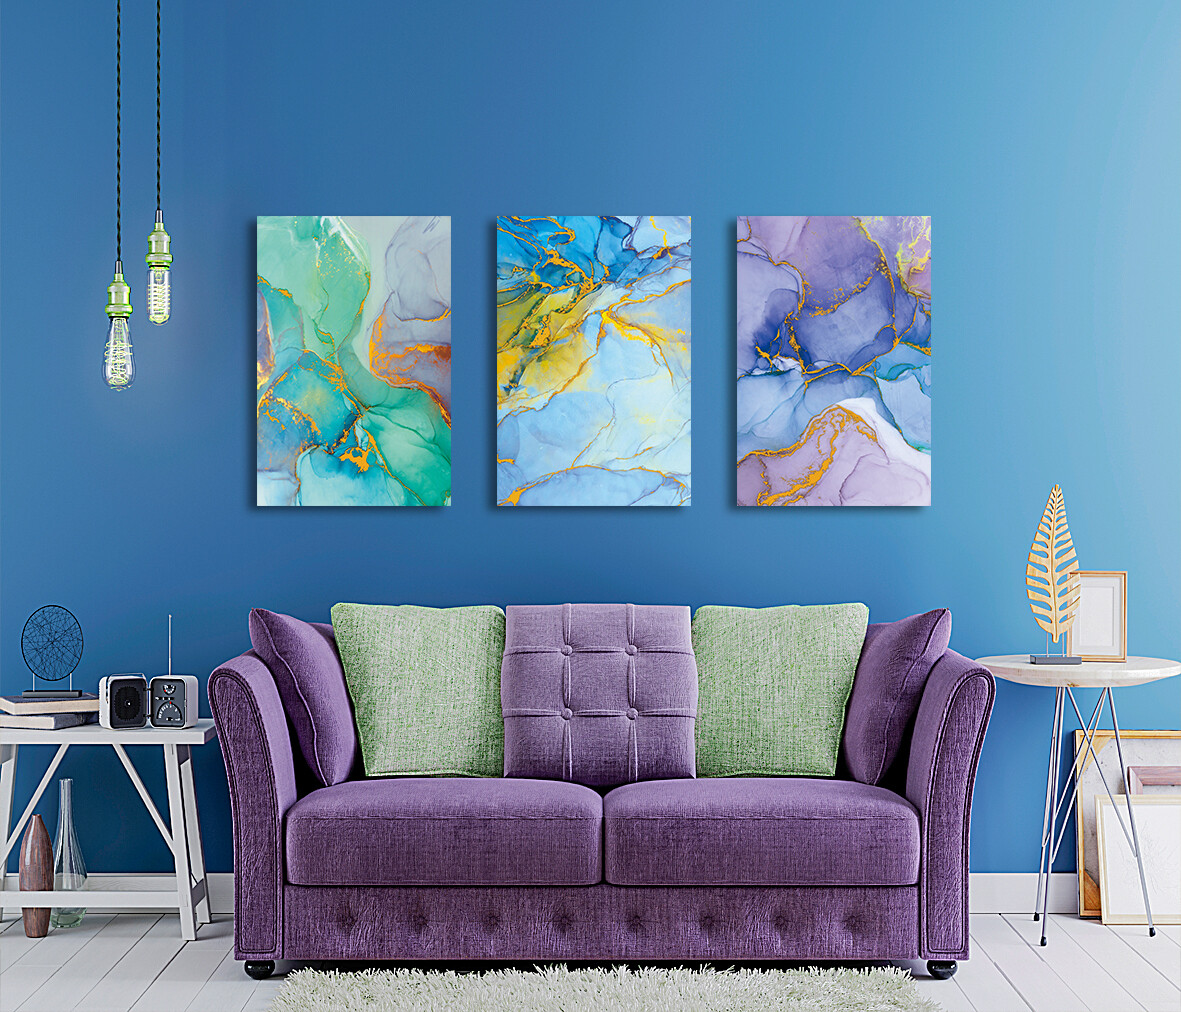 Colourful Abstract Painting  - Modern Luxury Wall art Printed on Acrylic Glass - Frameless and Ready to Hang